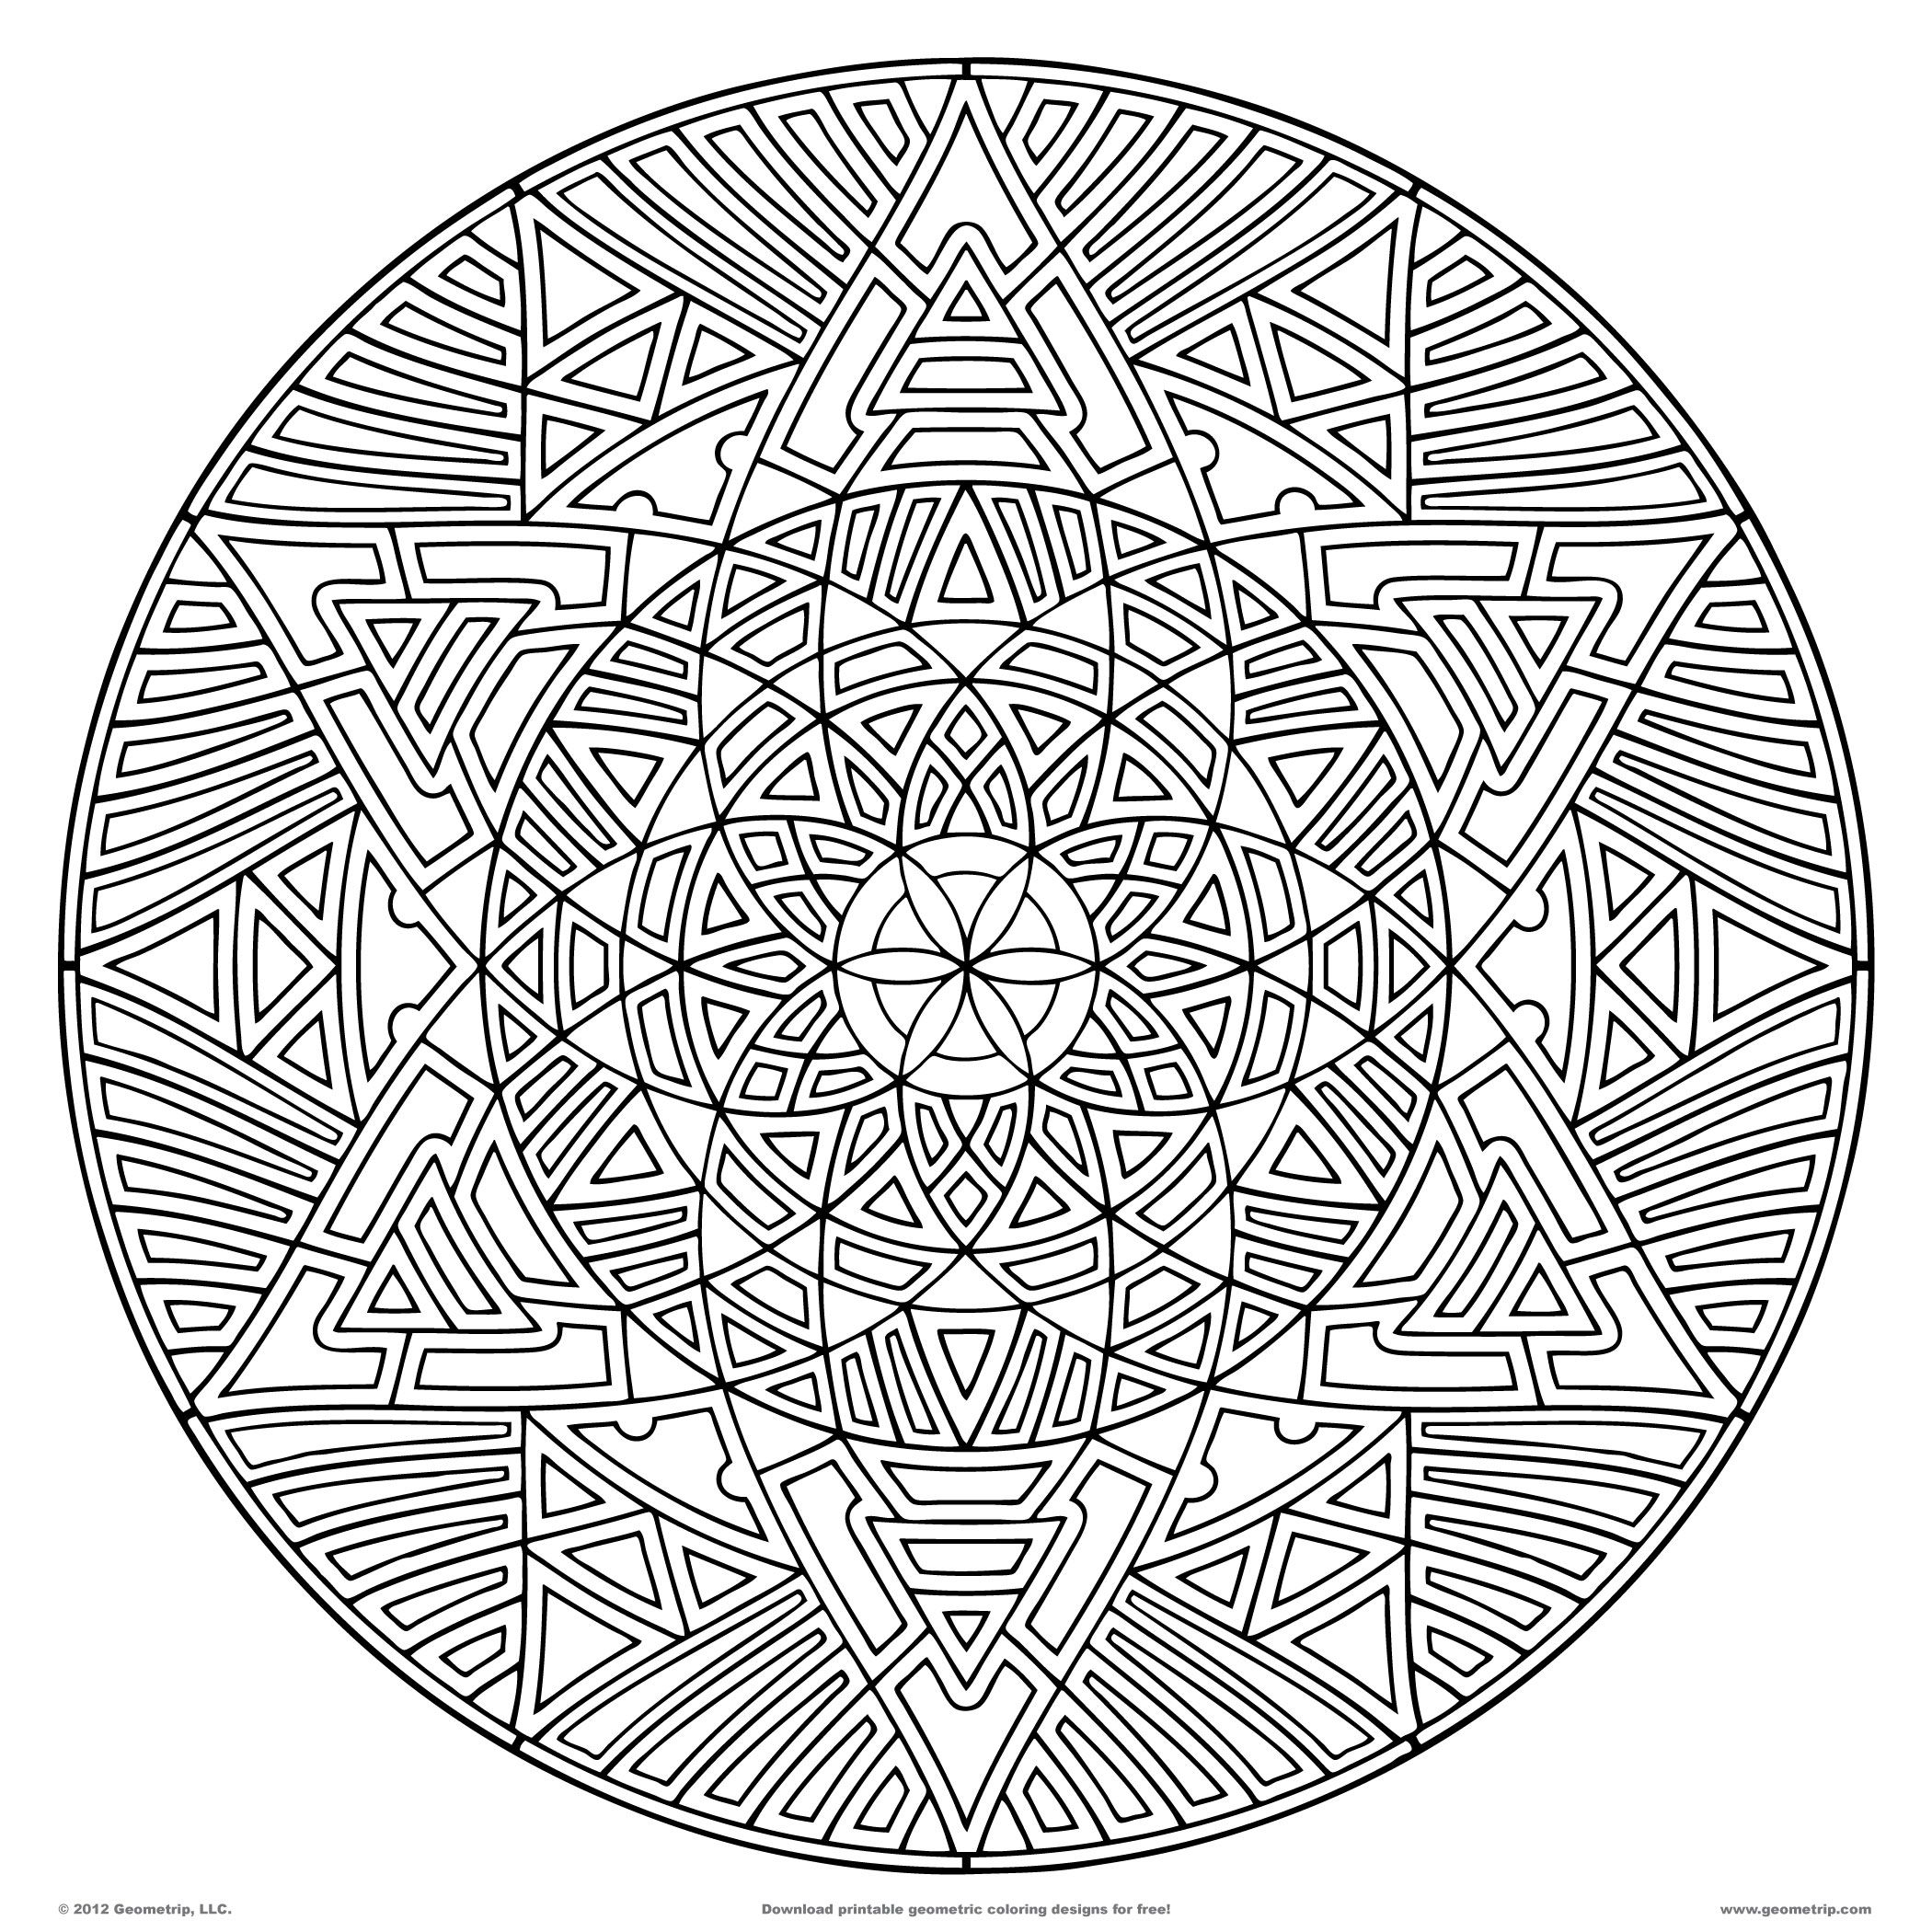 Colouring in pages mandala - Find This Pin And More On Mandalas Complex Geometric Coloring Pages